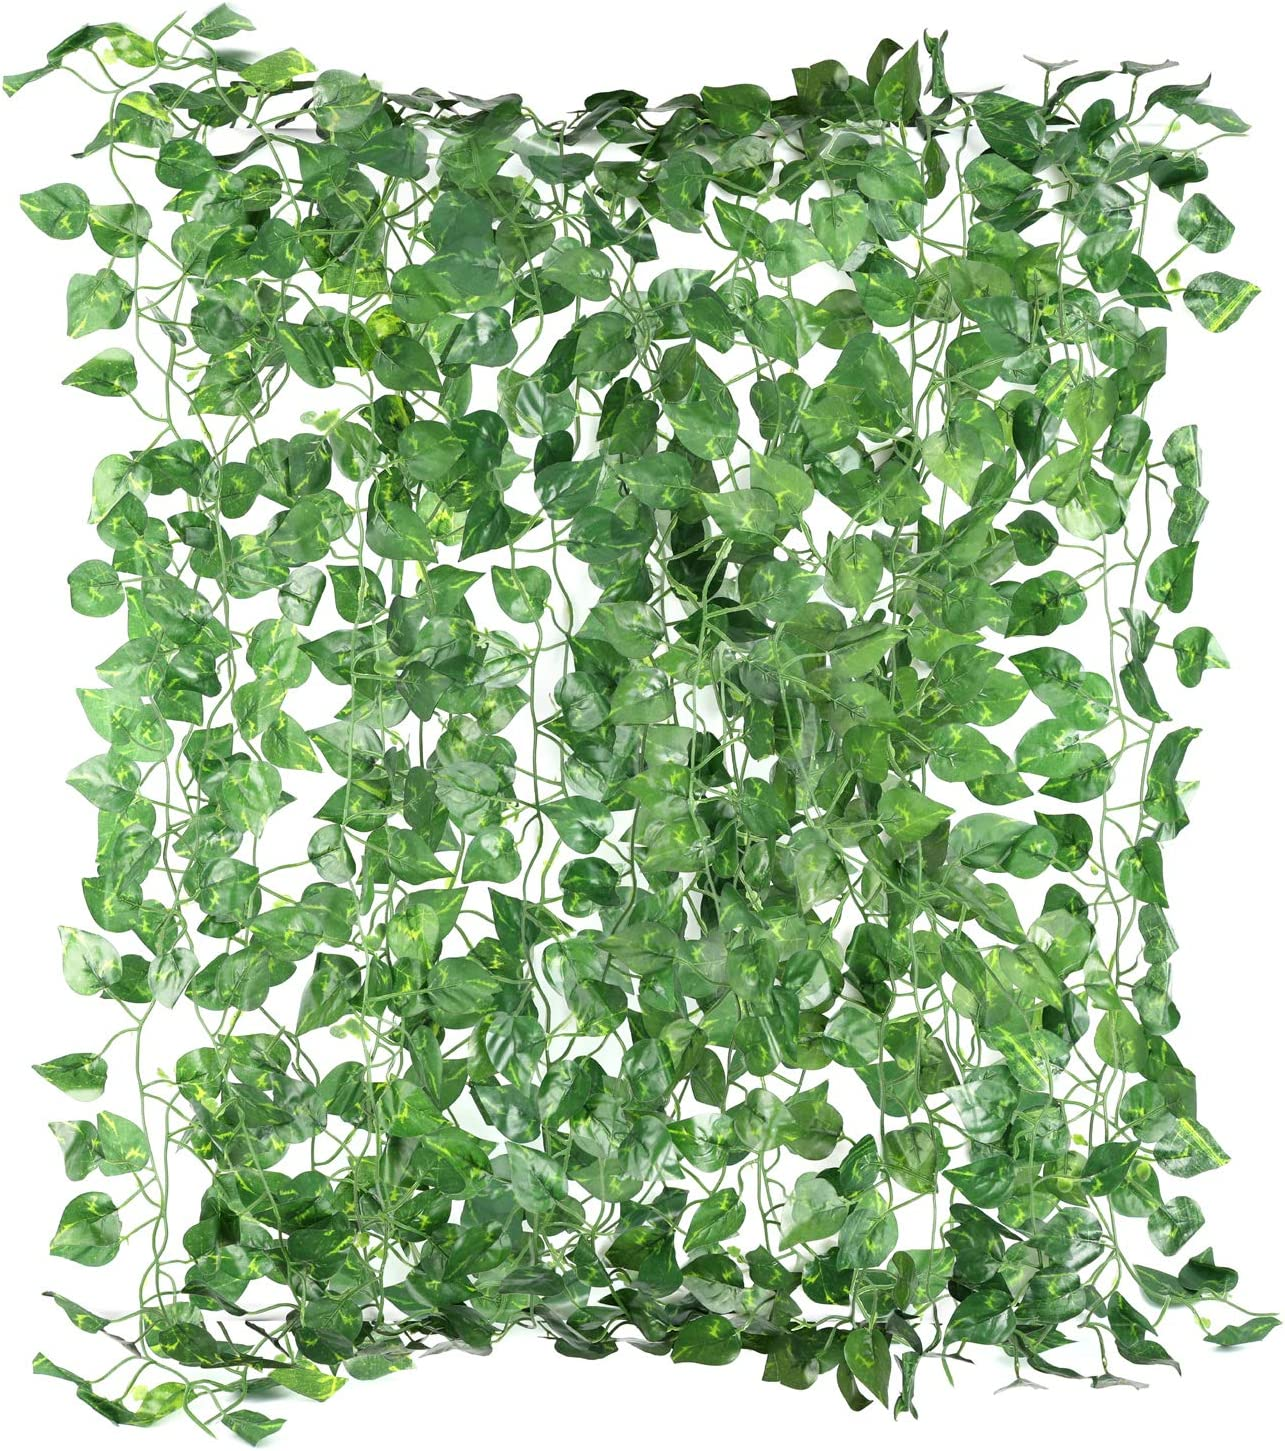 Yesland 24 Strands 156 Ft Fake Foliage Garland Leaves & Artificial Ivy Vine Hanging Plant, Decoration Scindapsus Leaves Plants for Garden Office Wedding Wall Decor